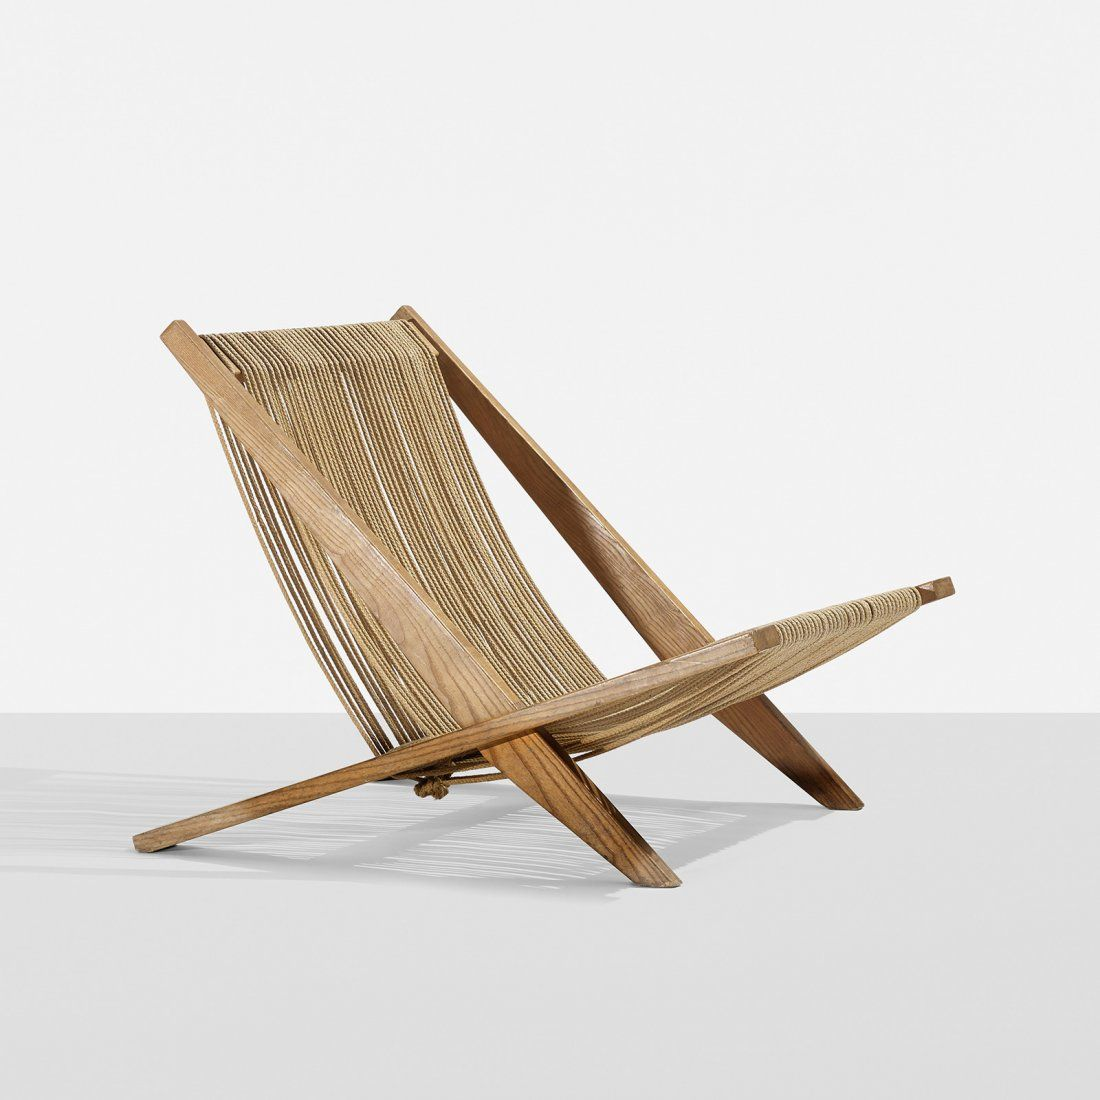 Lot Kjaerholm And Hoj Snedkerier Lounge Chair Lot Number 0314 Starting Bid 1 000 Auctioneer Wright Auction Chair Modern Woodworking Plans Lounge Chair